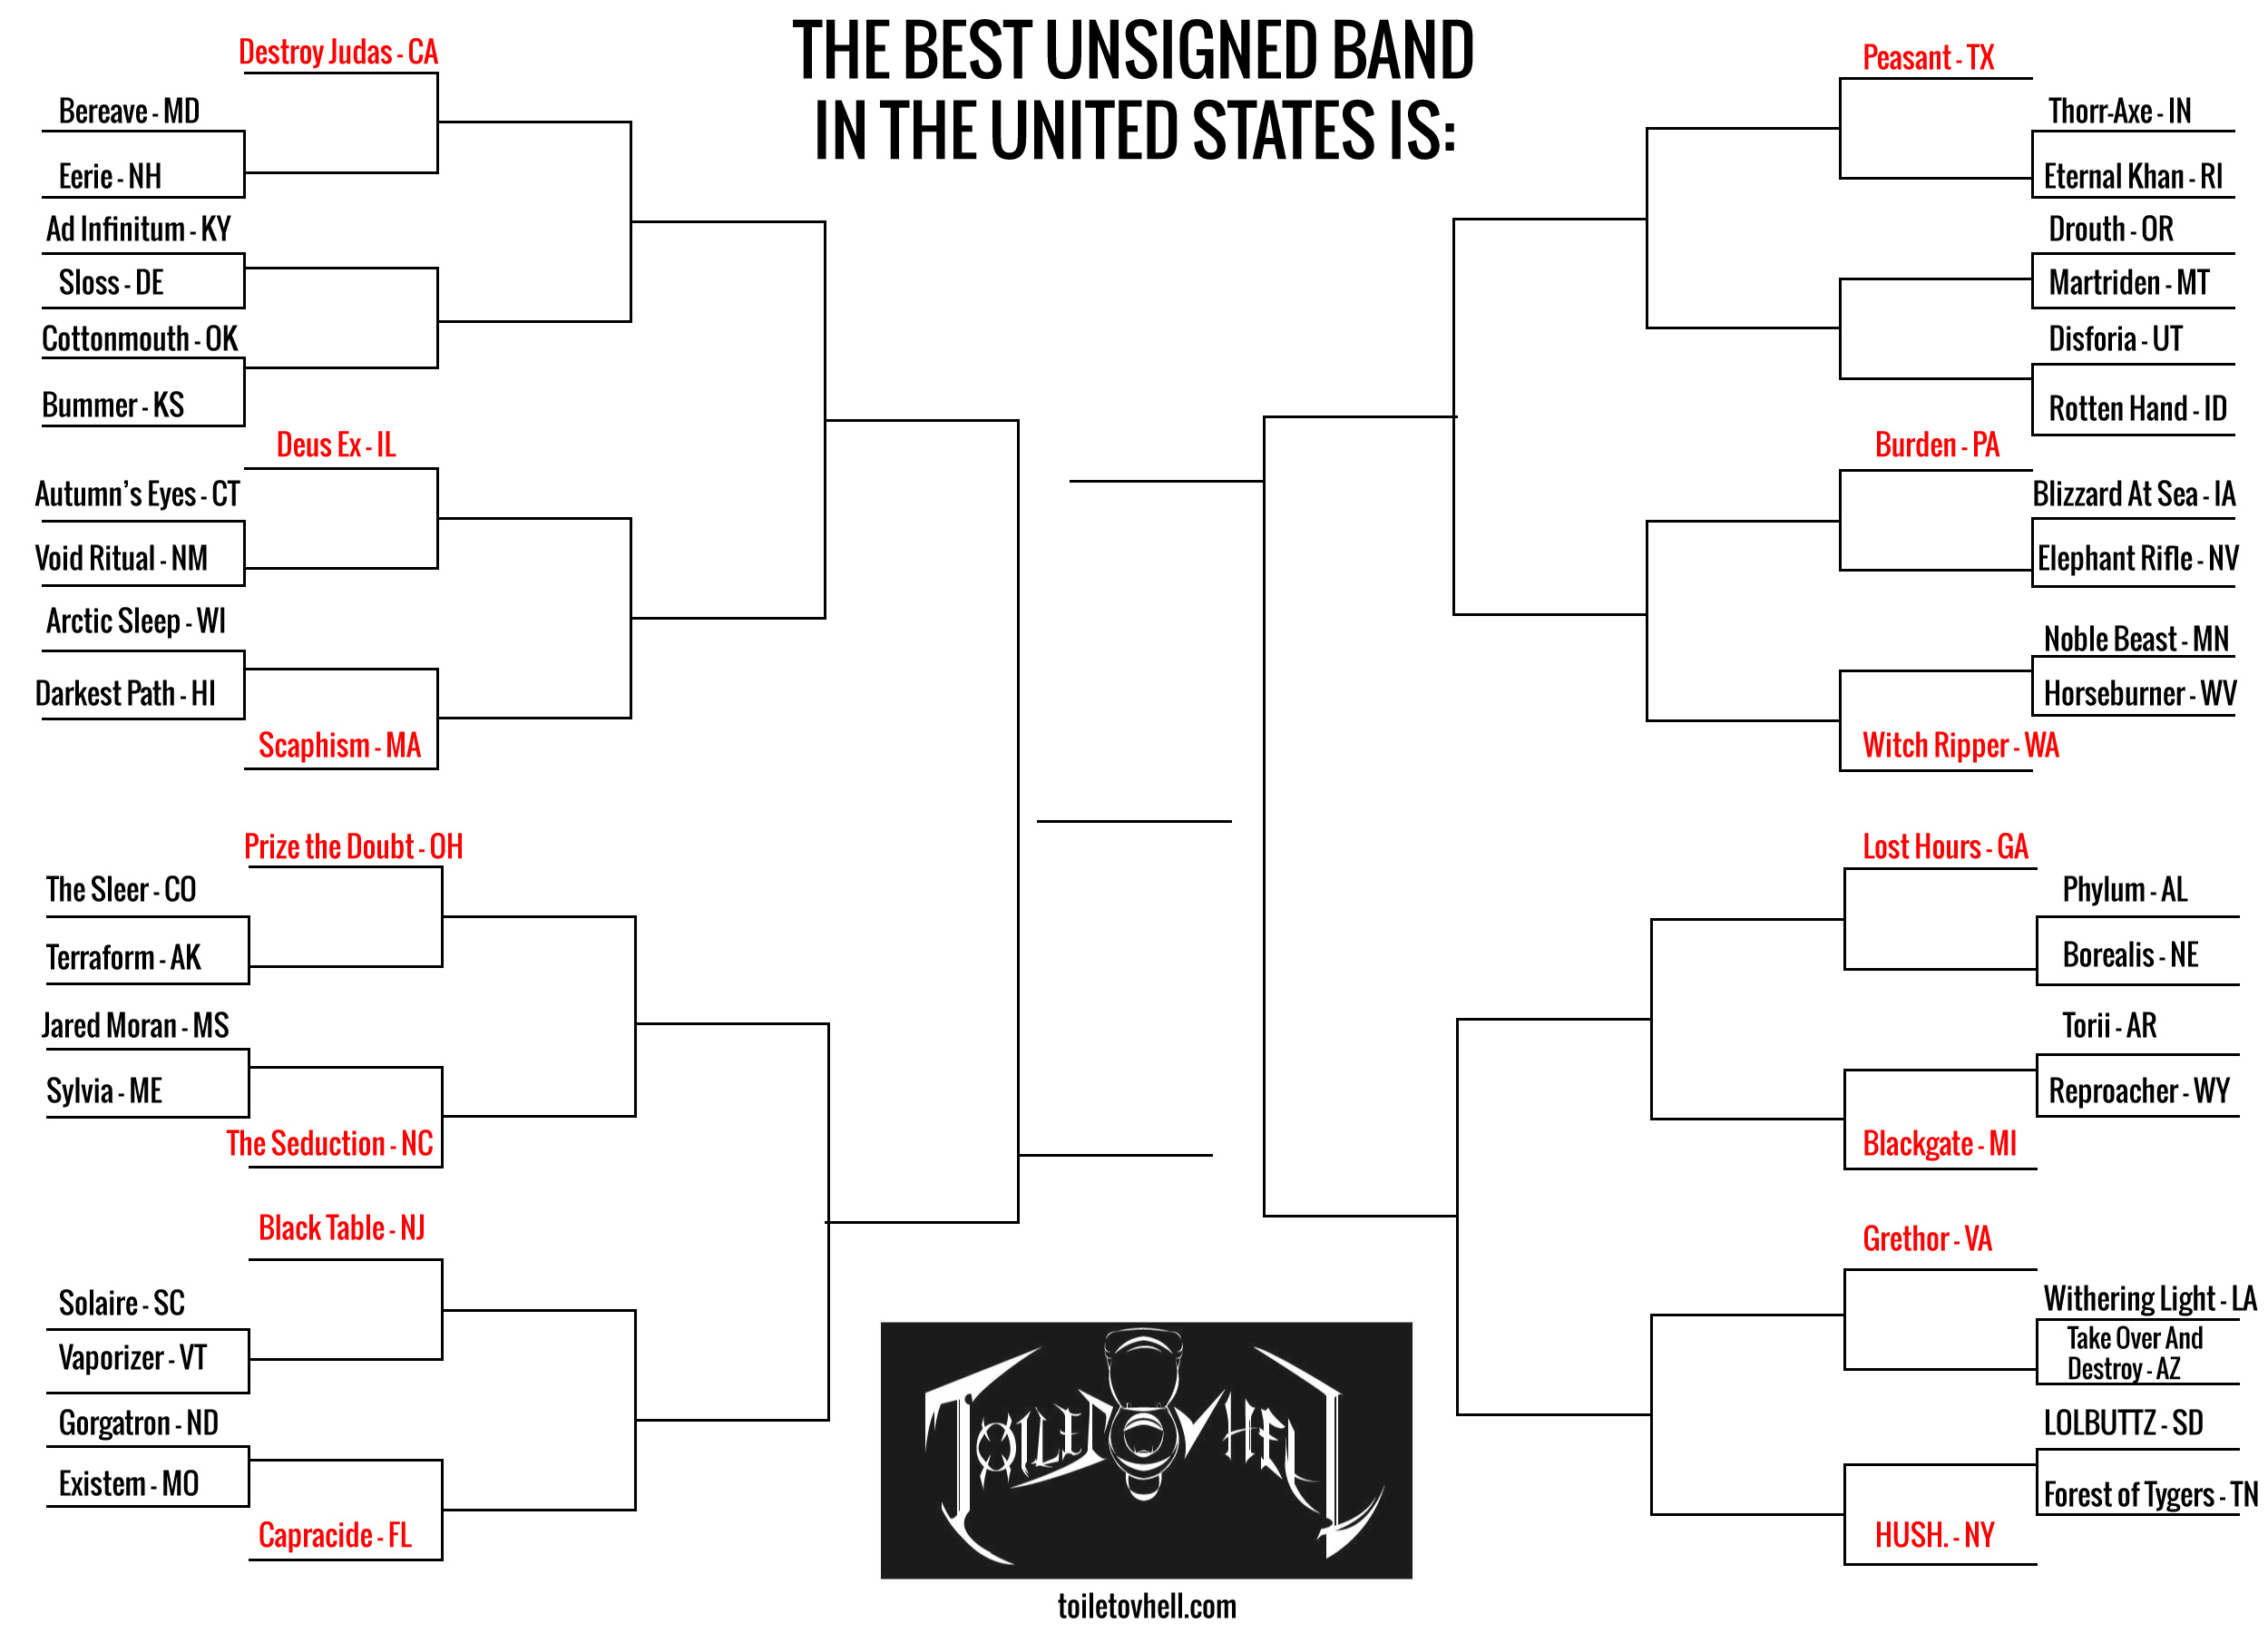 YOU Choose the Best Unsigned Band in the U S: Round 1 pt  3